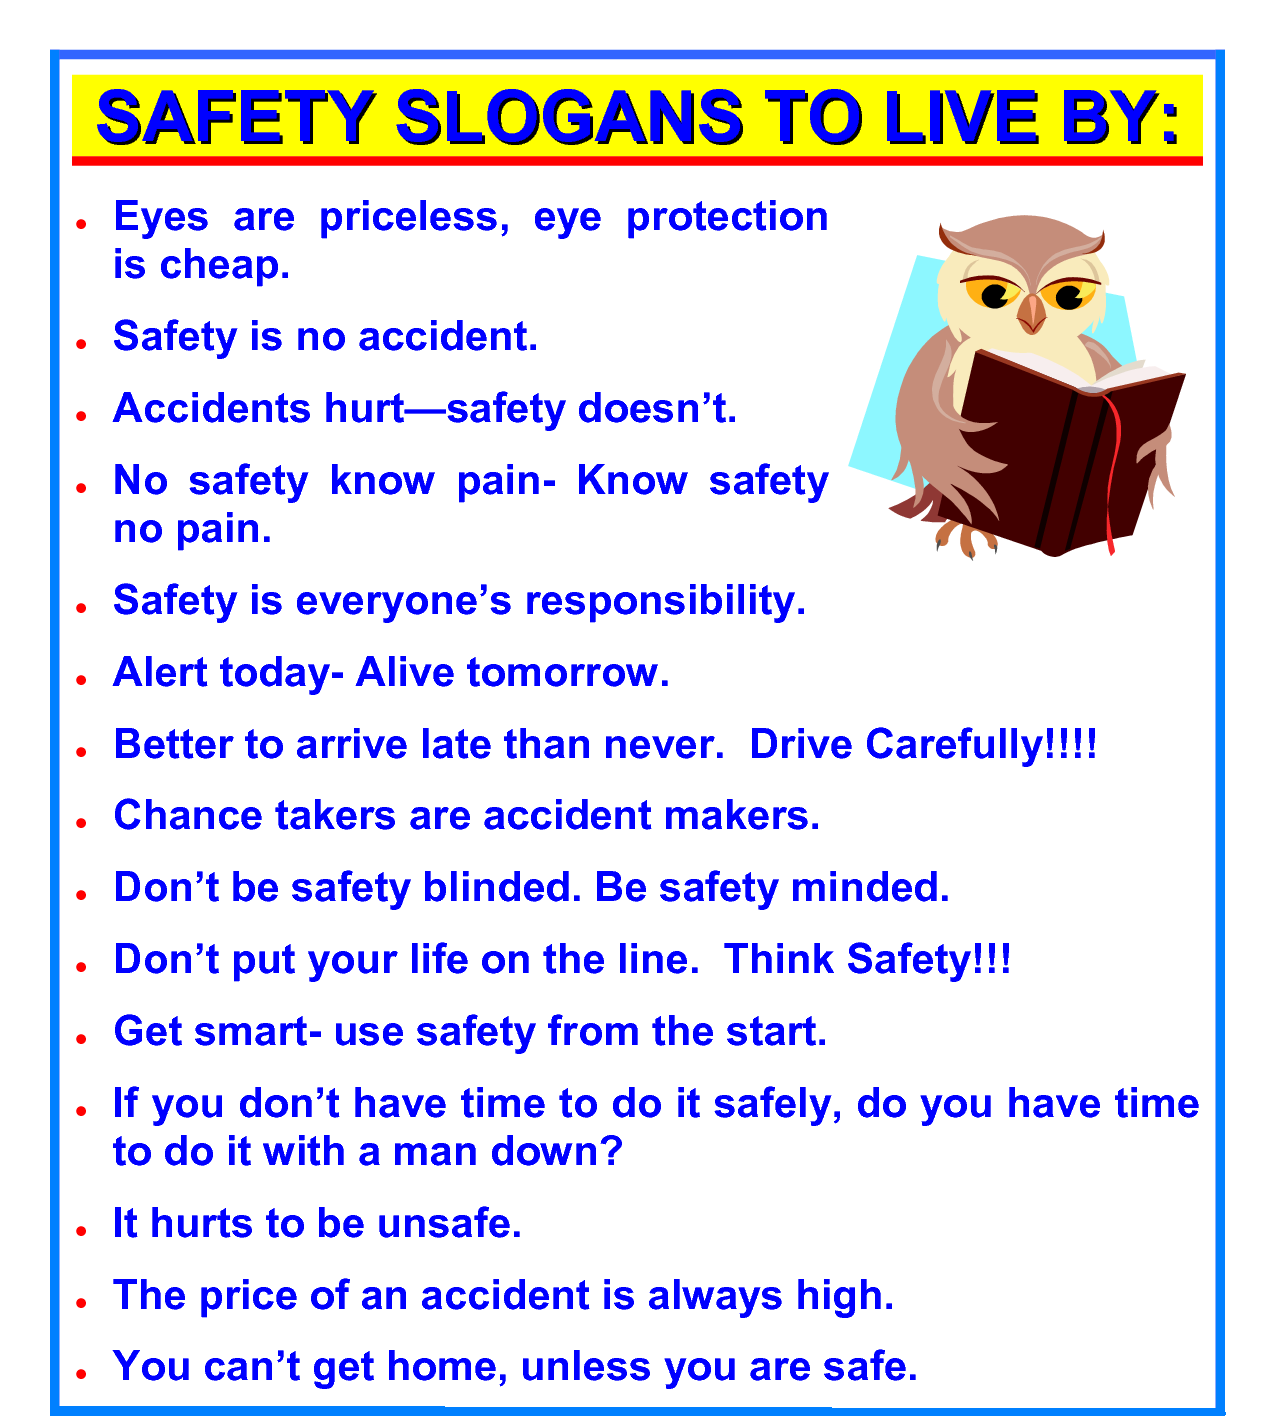 Fire Safety Slogans And Quotes Quotesgram